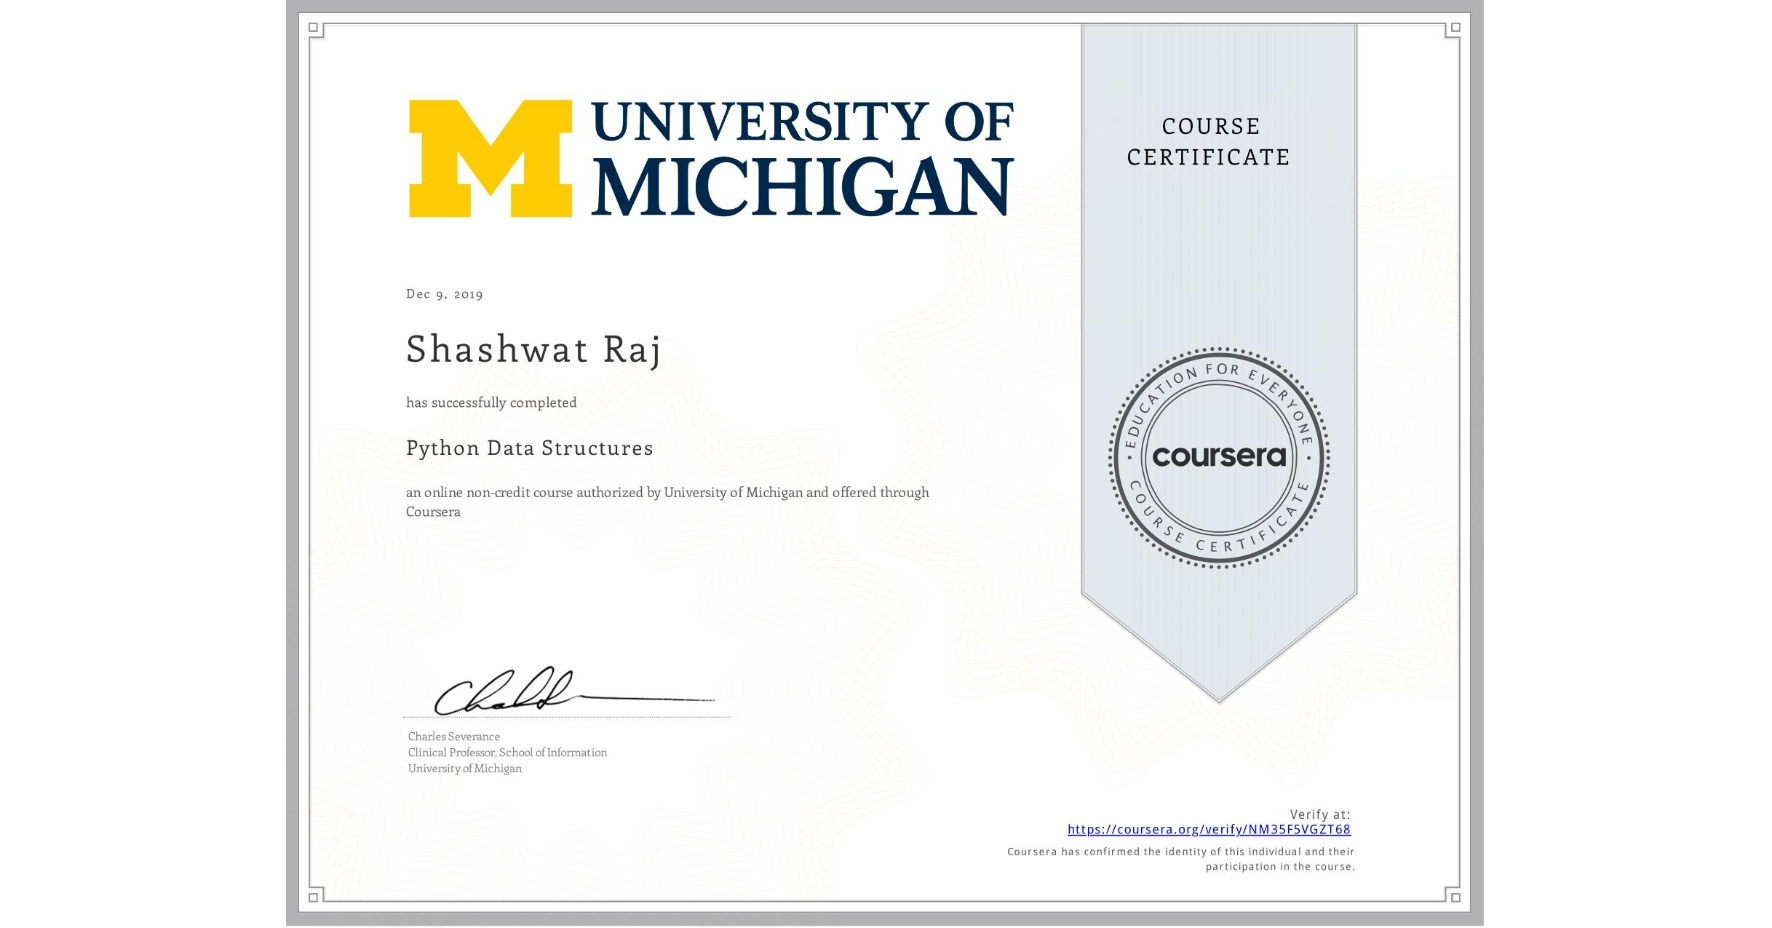 View certificate for Shashwat Raj, Python Data Structures, an online non-credit course authorized by University of Michigan and offered through Coursera